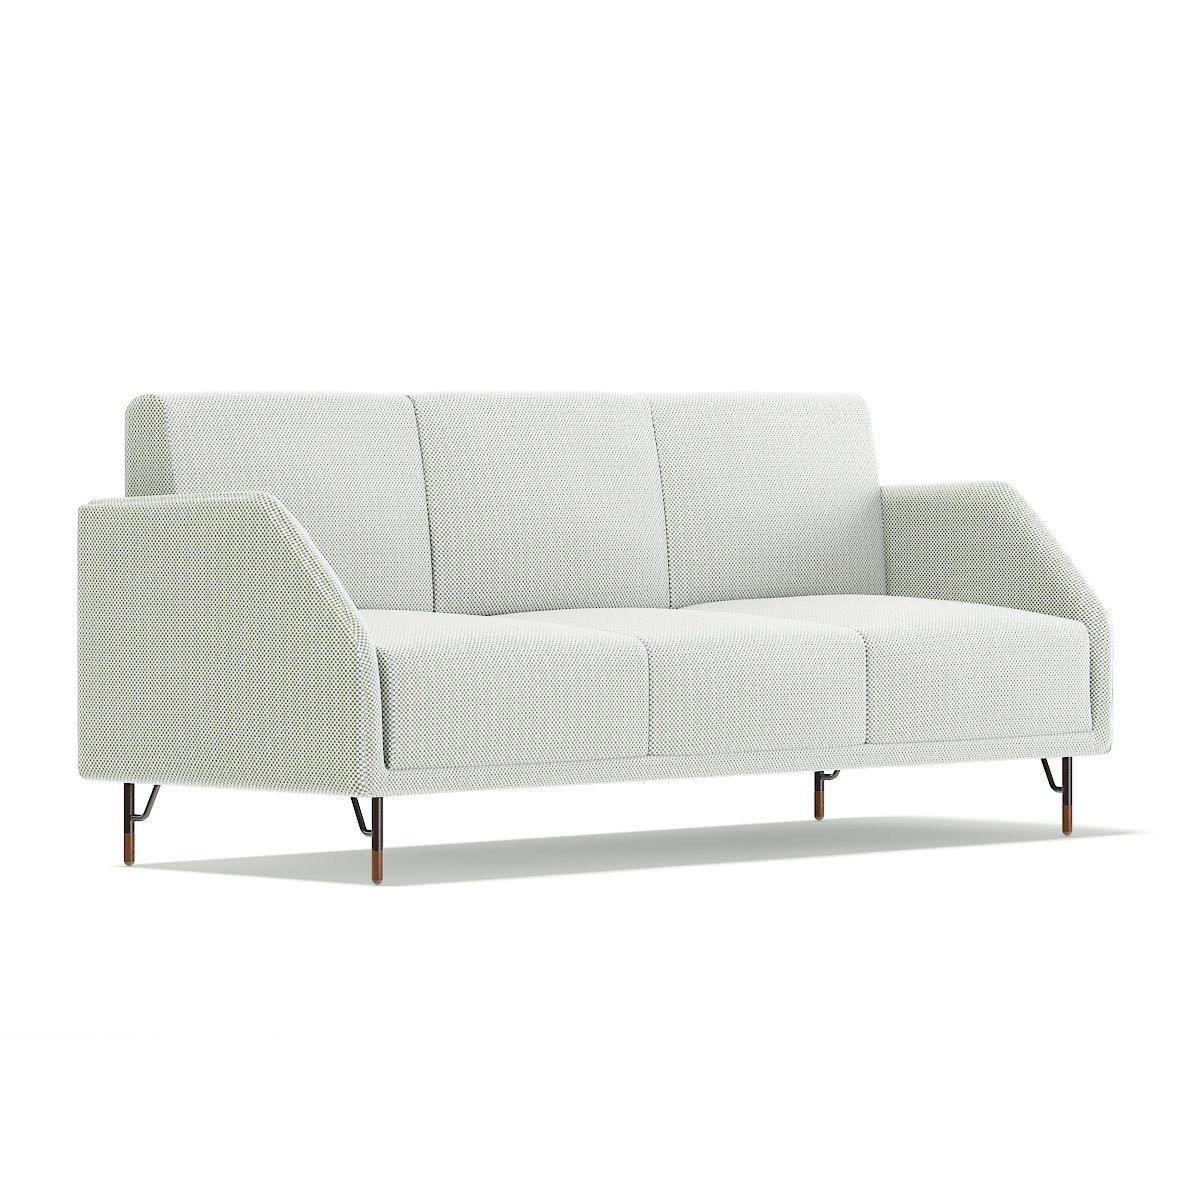 White Fabric Sofa Model Cgaxis